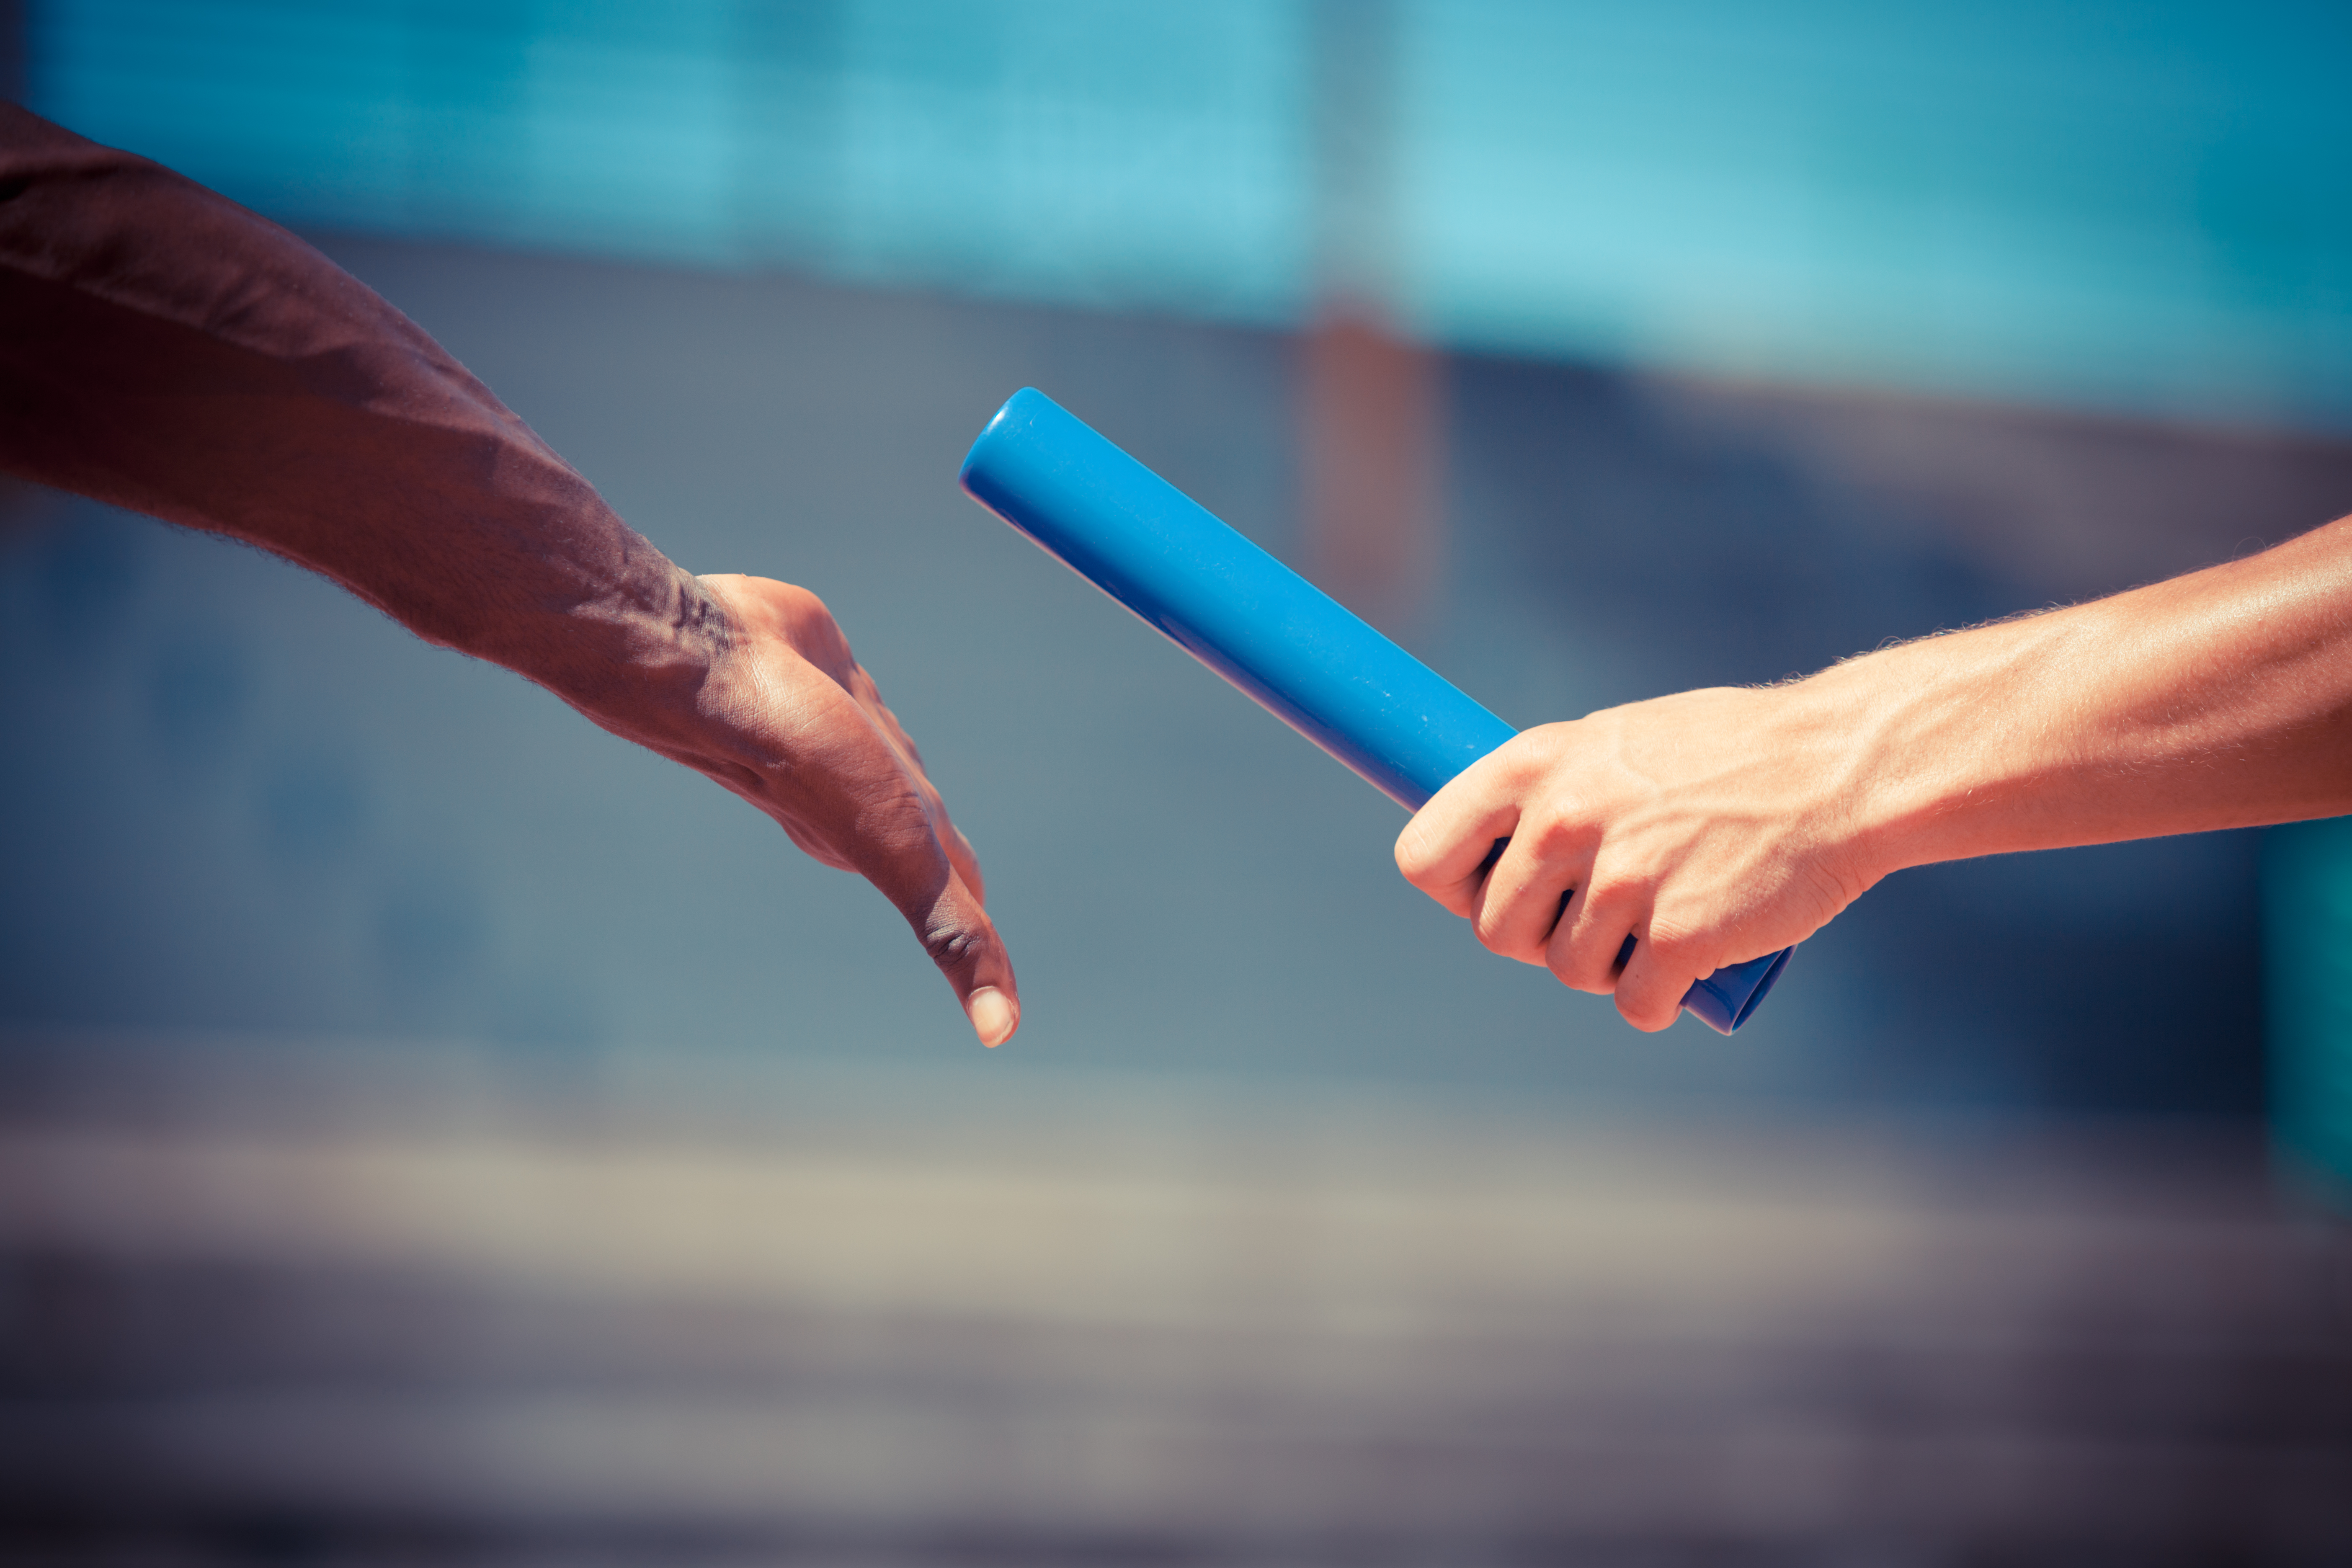 passing the baton during a relay race